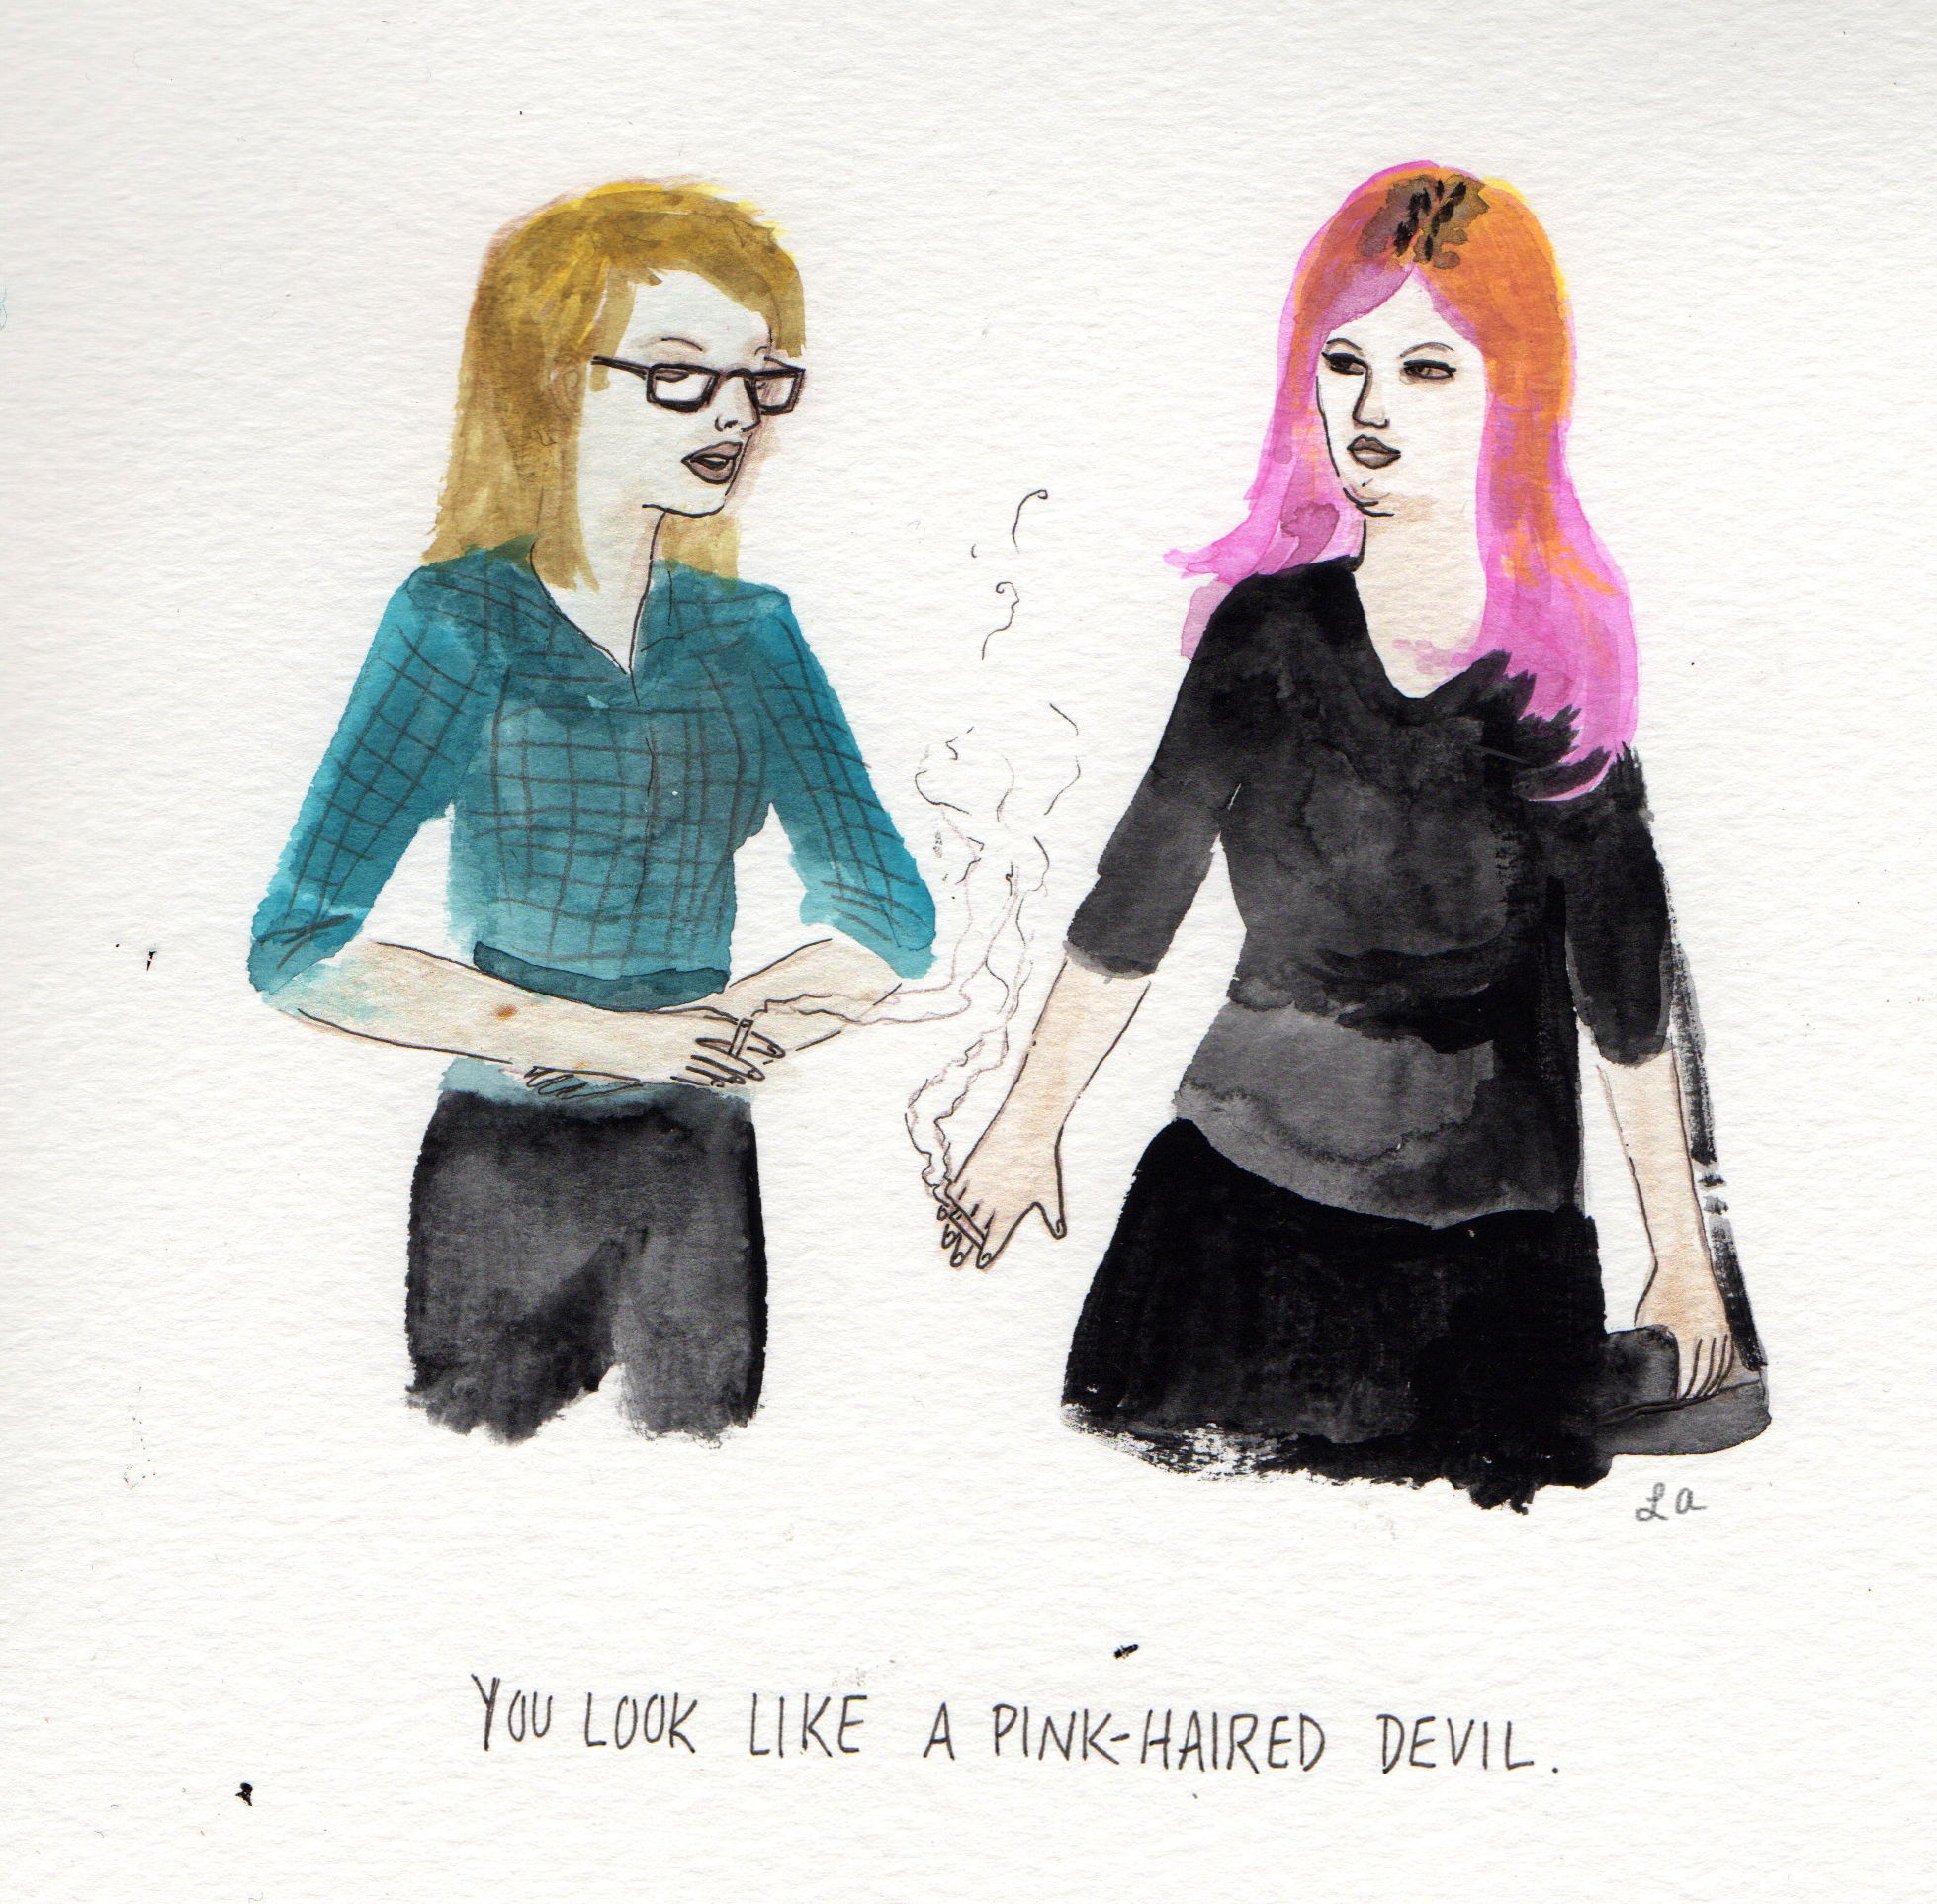 Excerpt from an unfinished personal comic about two female artists and the different paths they choose.